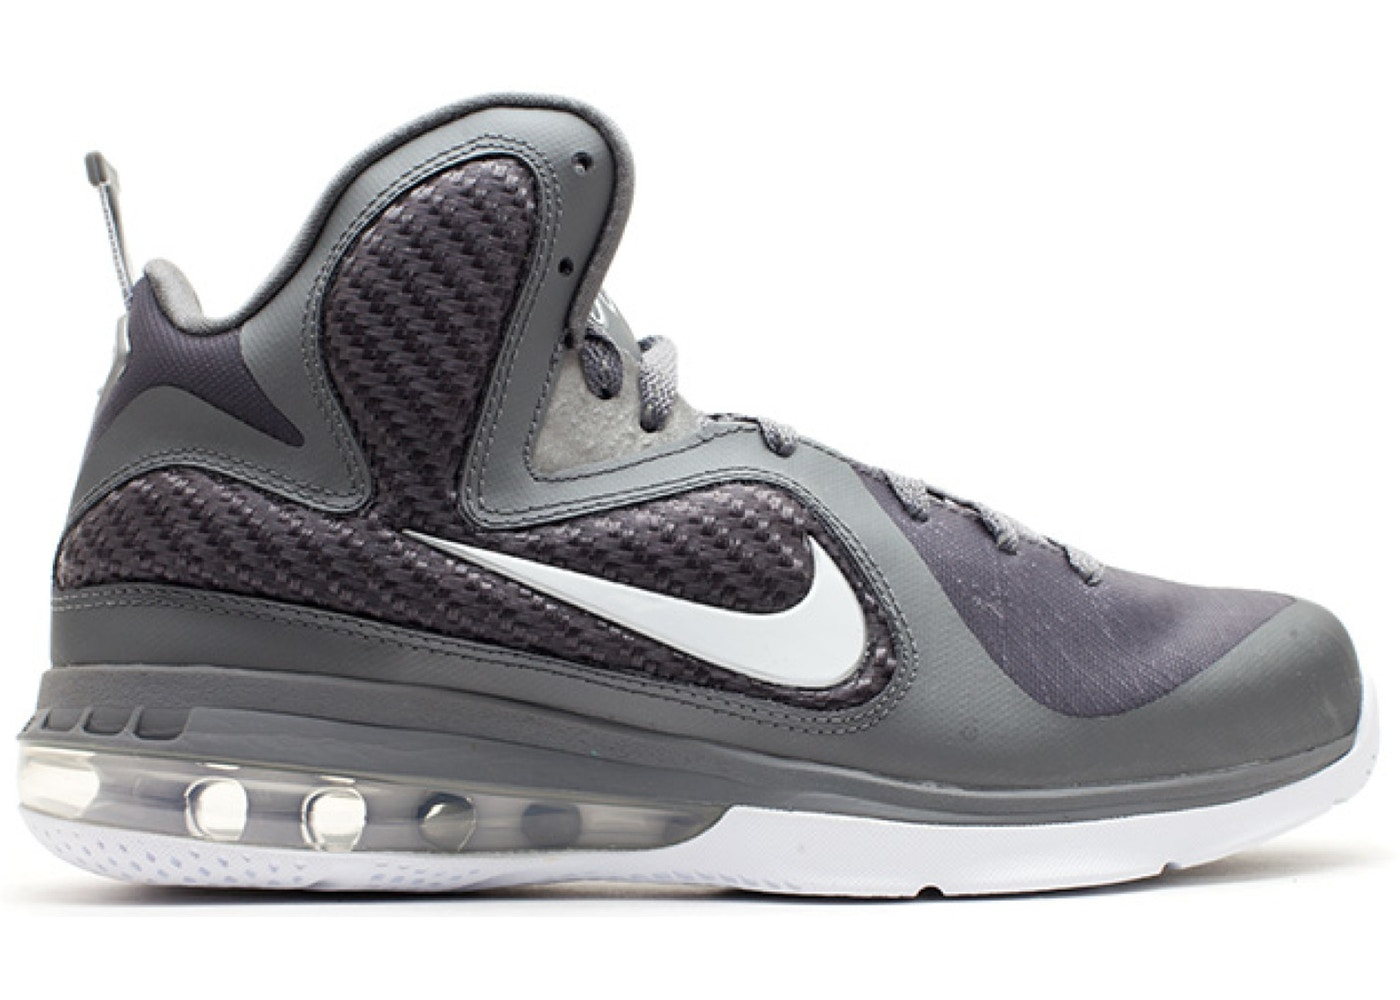 online retailer e0ee0 f0476 Nike LeBron 9 Cool Grey (GS) - 472664-005